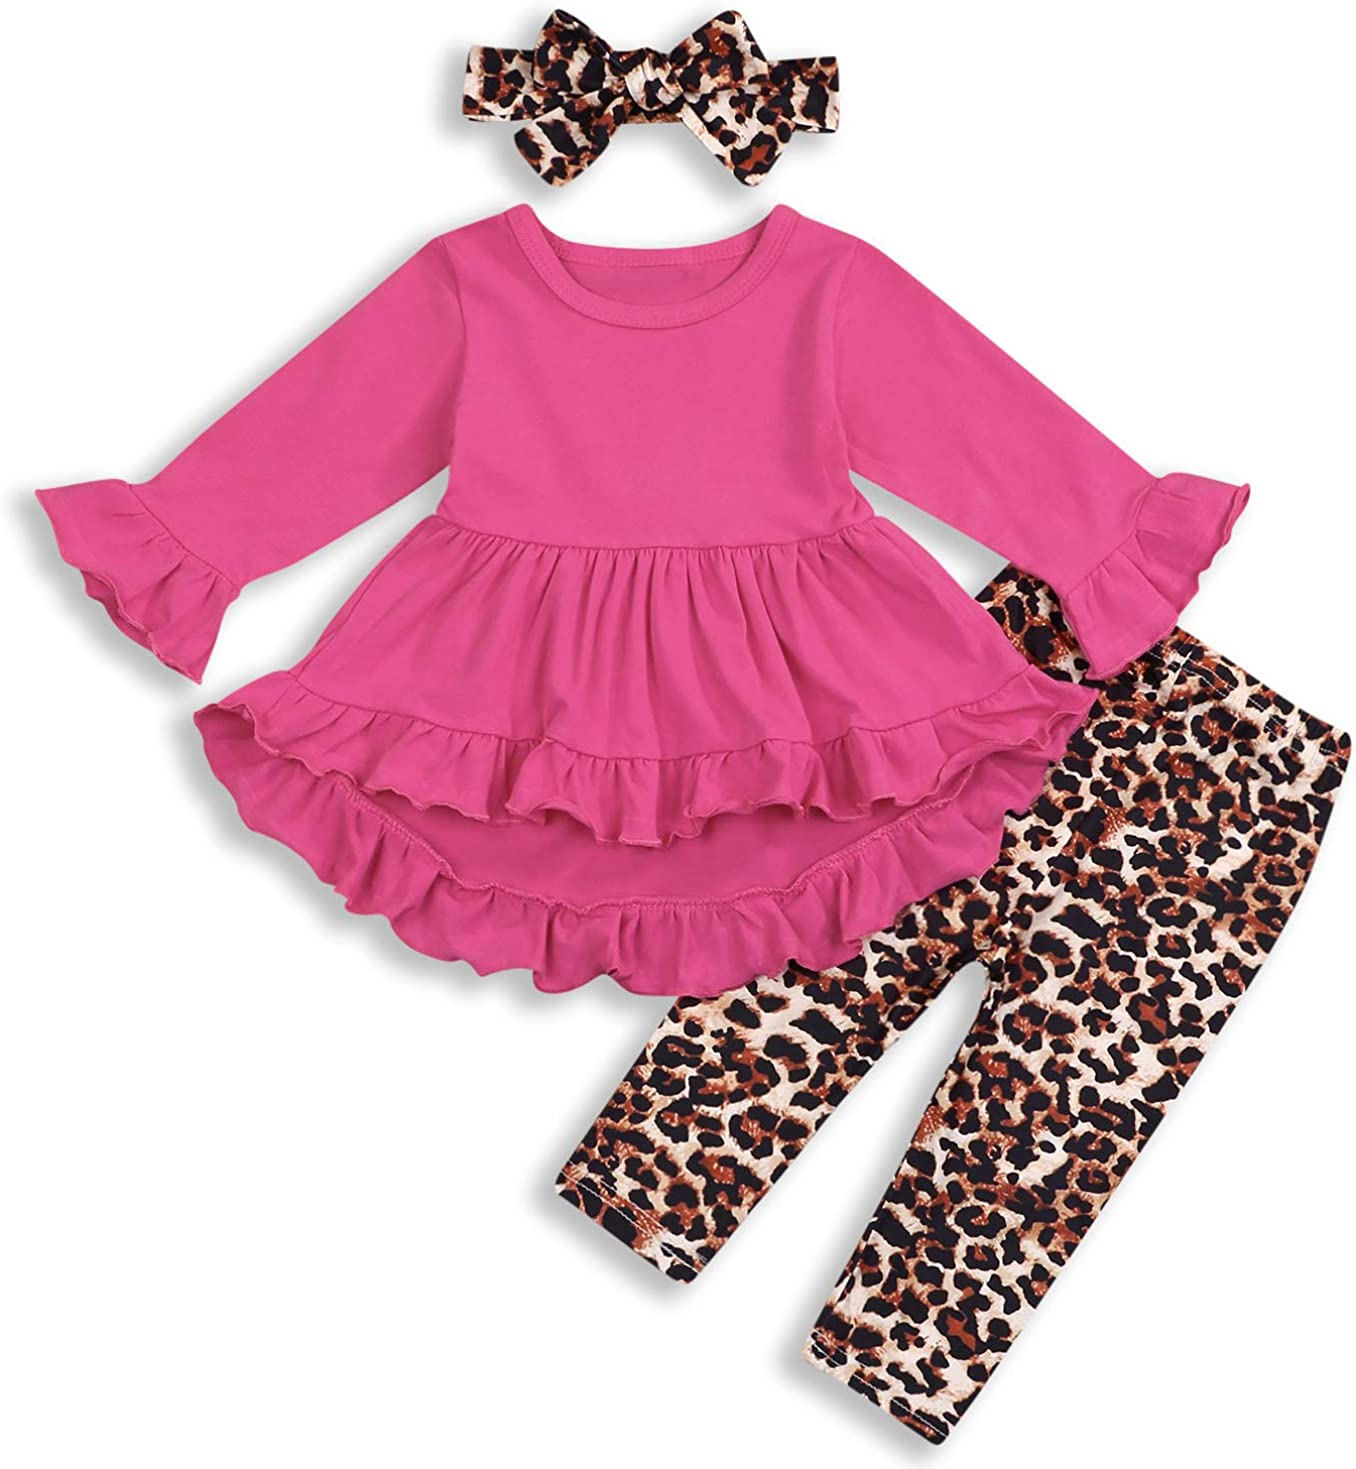 Toddler Kid Baby Girl Clothes Flare Sleeves Top Dress+ Leopard Trousers Pants Set Outfits (18-24 Months, Rose red top Dress+Leopard Pants Set)